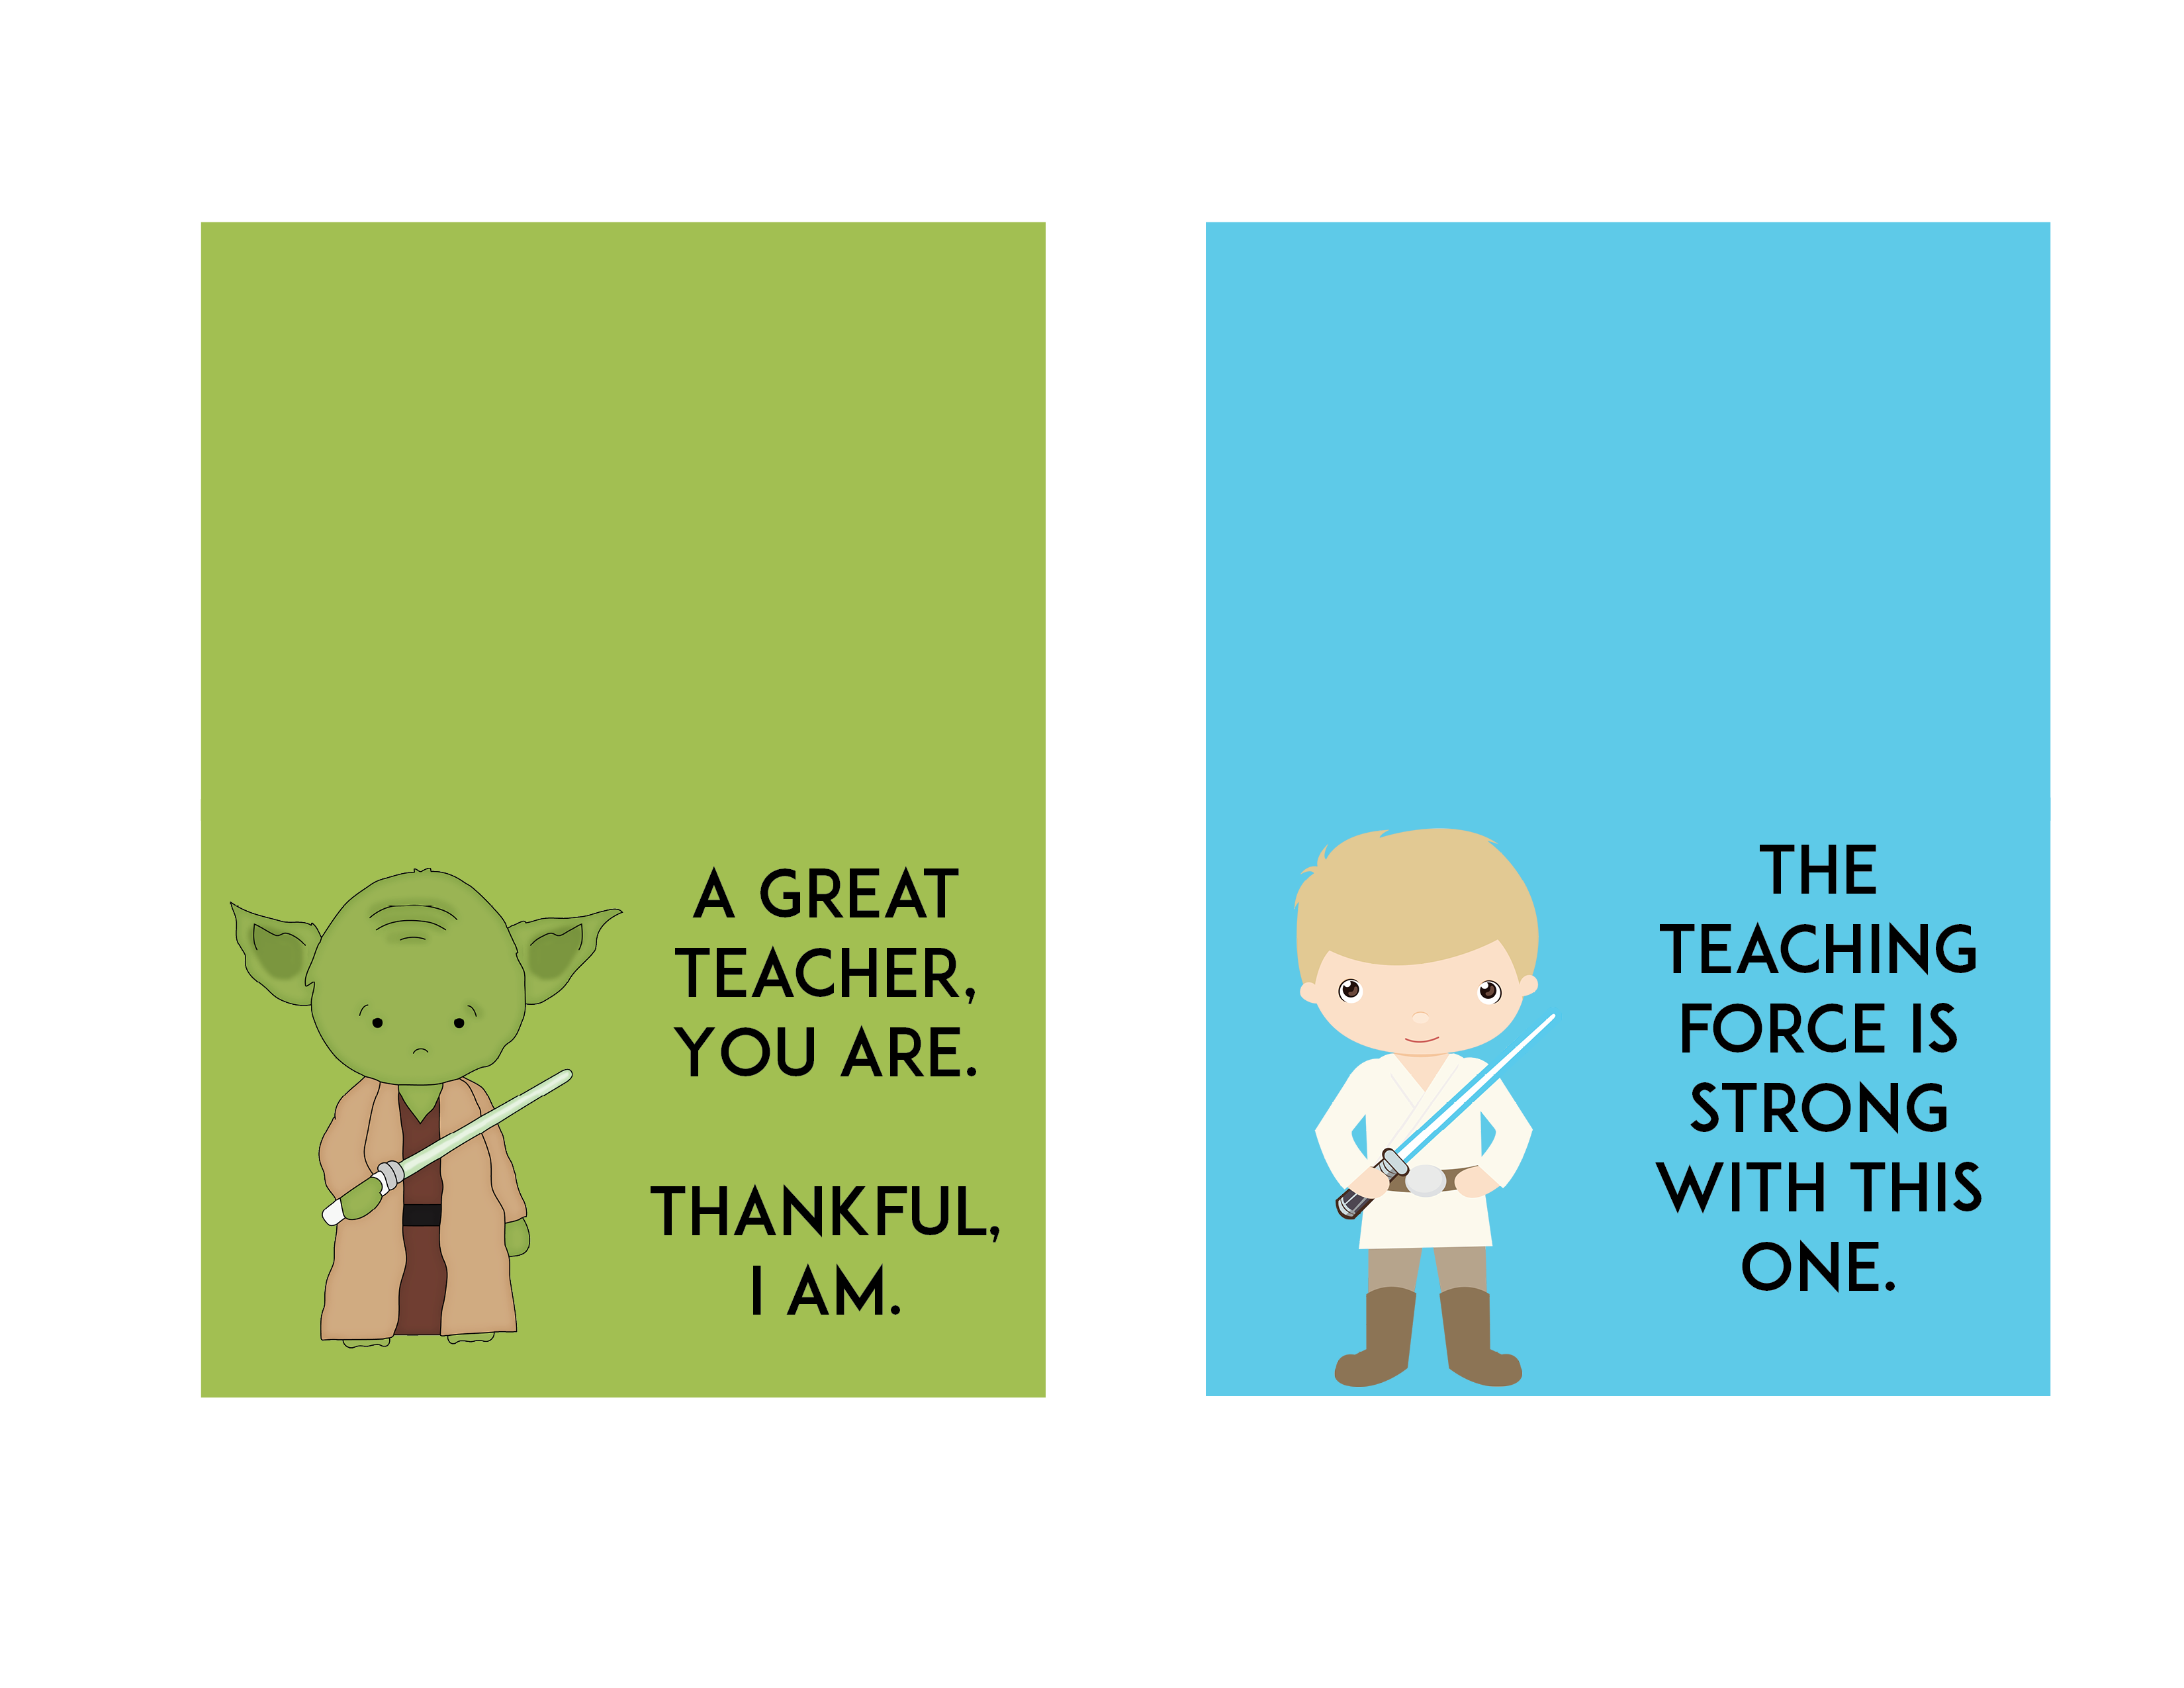 graphic relating to Star Wars Thank You Cards Printable Free called Absolutely free Star Wars Instructor Appreciation Working day Printable Trainer